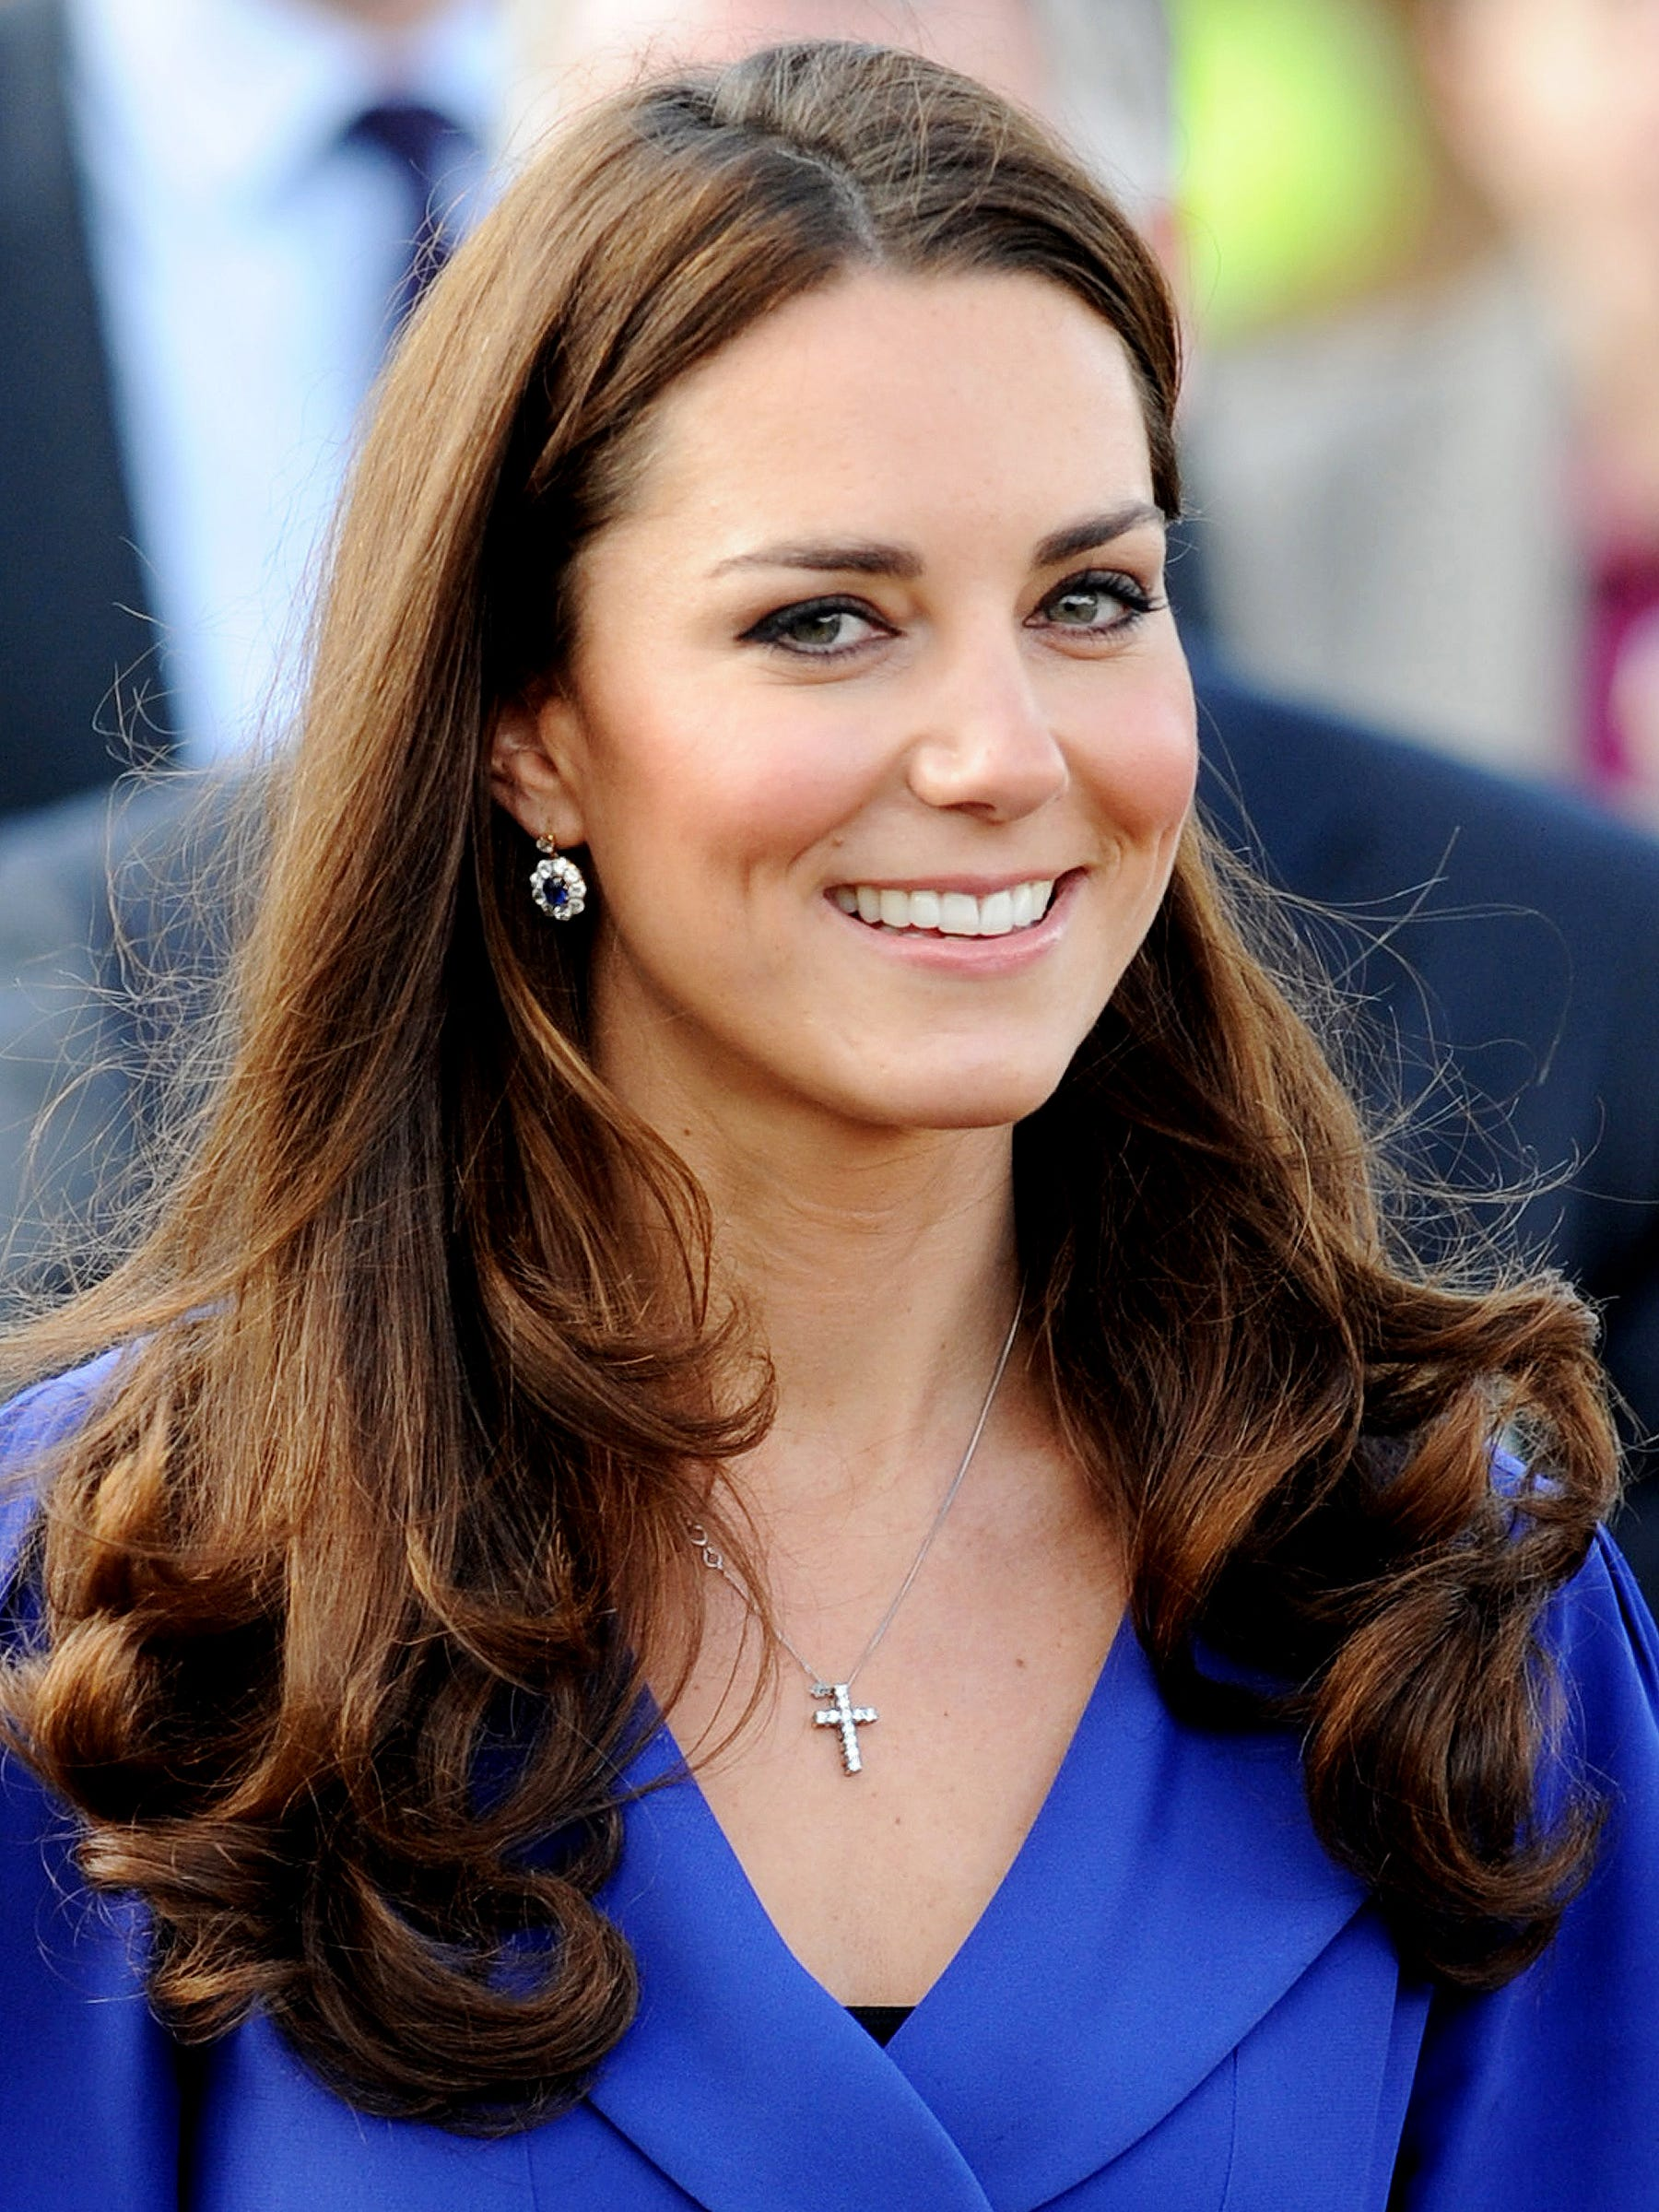 The Hair And Makeup Looks Kate Middleton Always Wears